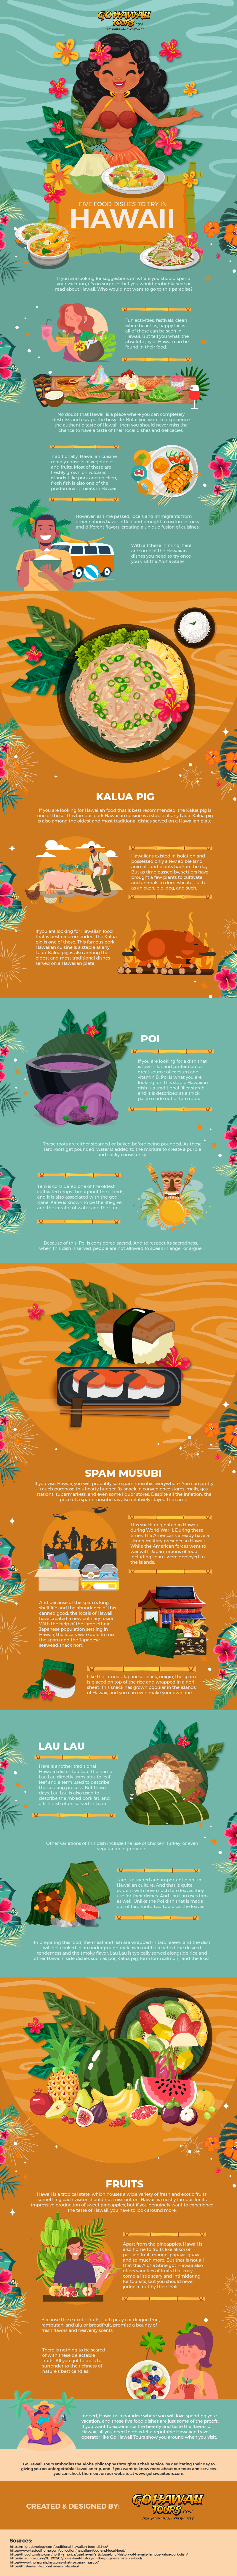 Five Food Dishes to try in Hawaii Infographic Image- 65JAKwlkL6